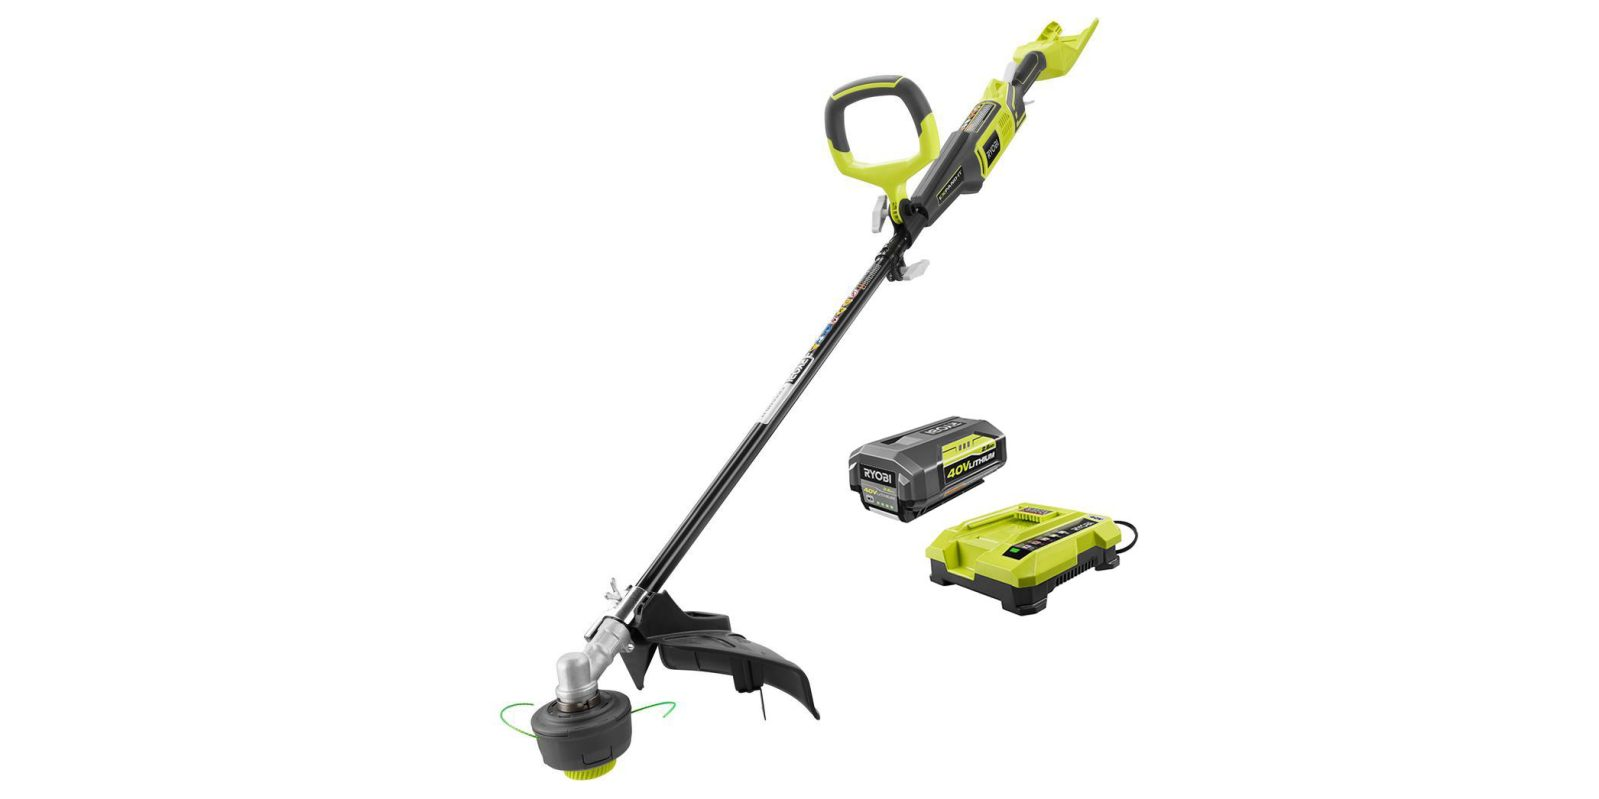 Green Deals: Ryobi 40V Cordless String Trimmer w/ Battery